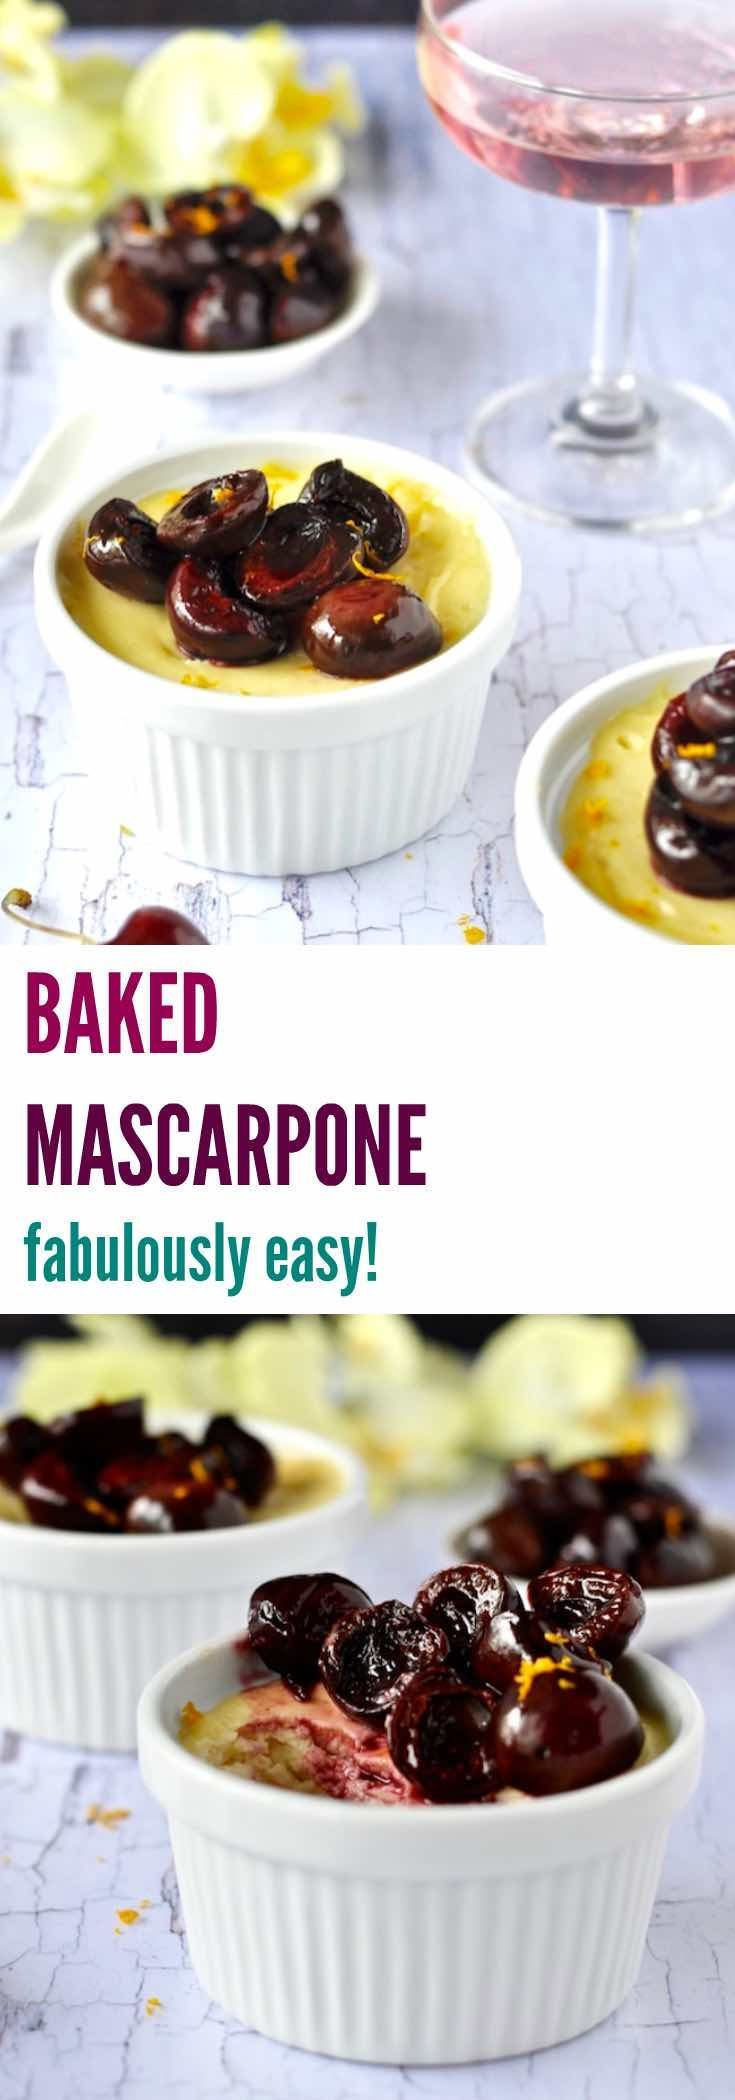 BAKED MASCARPONE is a healthier and easier version of creme brûlée with a gorgeously decadent creamy custard but without the hassles of making a custard. It's the easiest dessert you'll ever make!